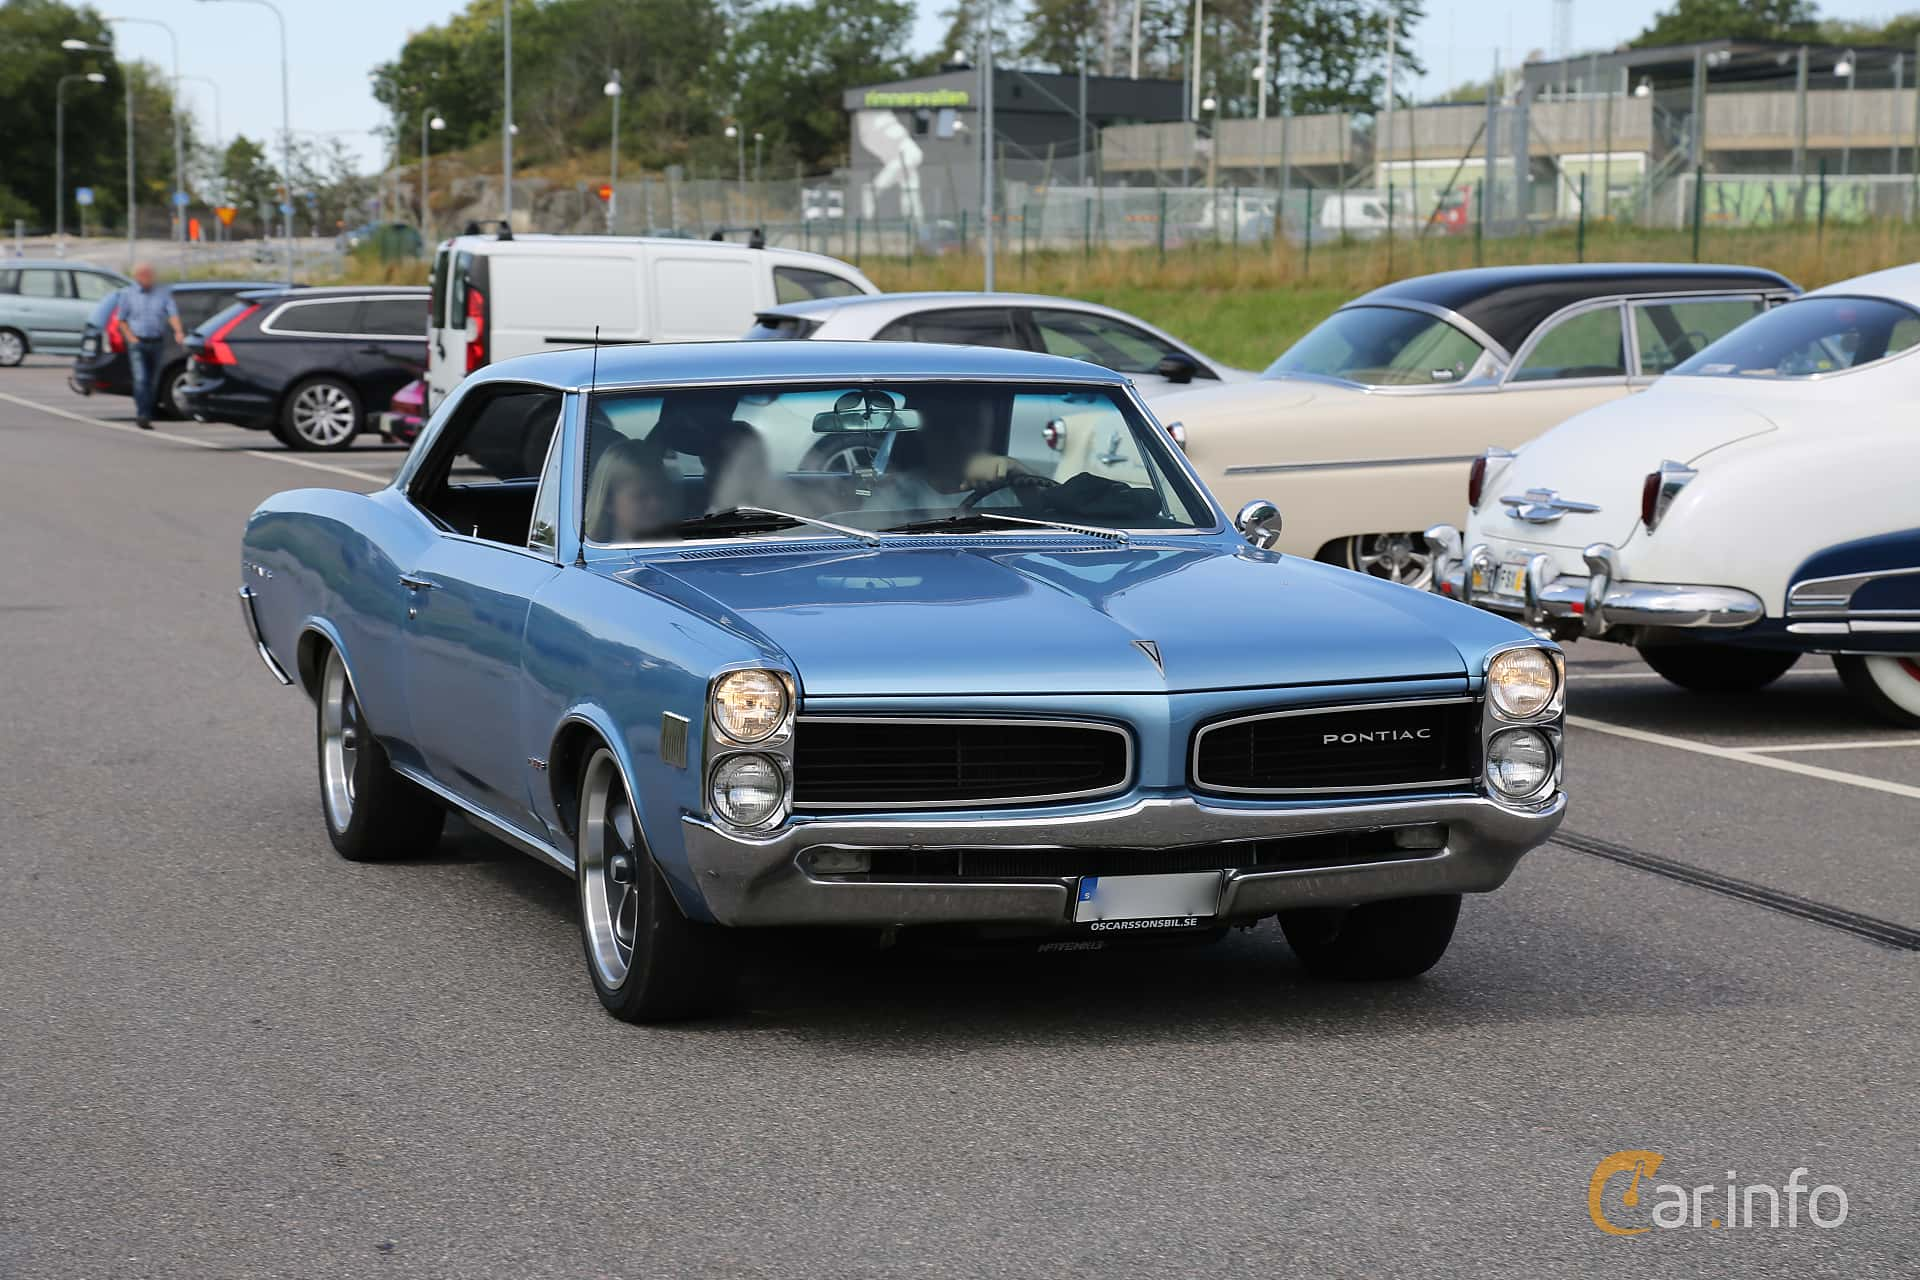 Front/Side  of Pontiac LeMans 2-door Hardtop 6.9 V8 Hydra-Matic, 343ps, 1966 at A-bombers - Old Style Weekend Backamo 2019